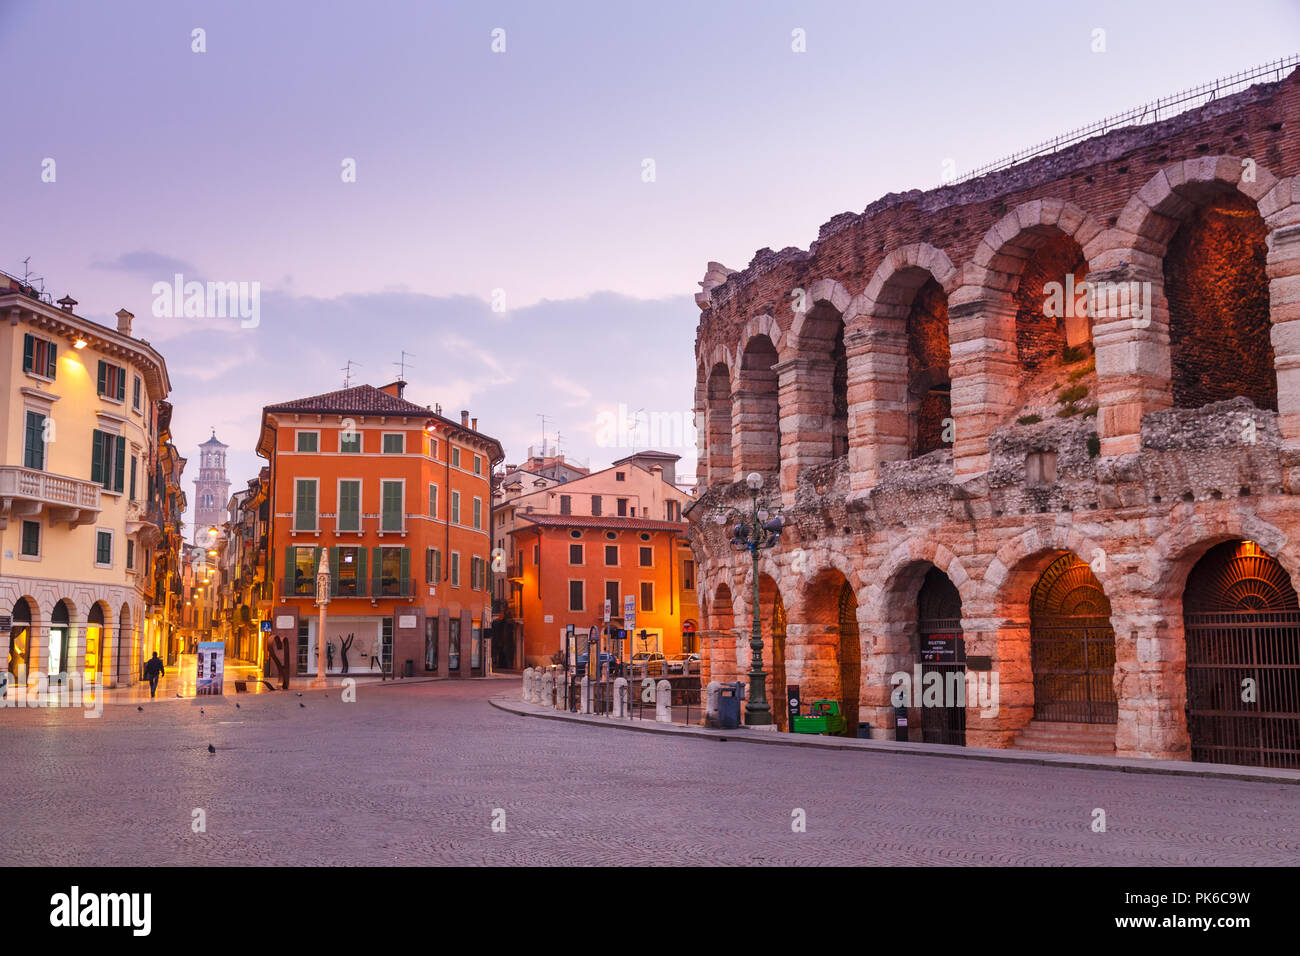 Morning in the streets of Verona near the Coliseum Arena di Verona. Italy. - Stock Image